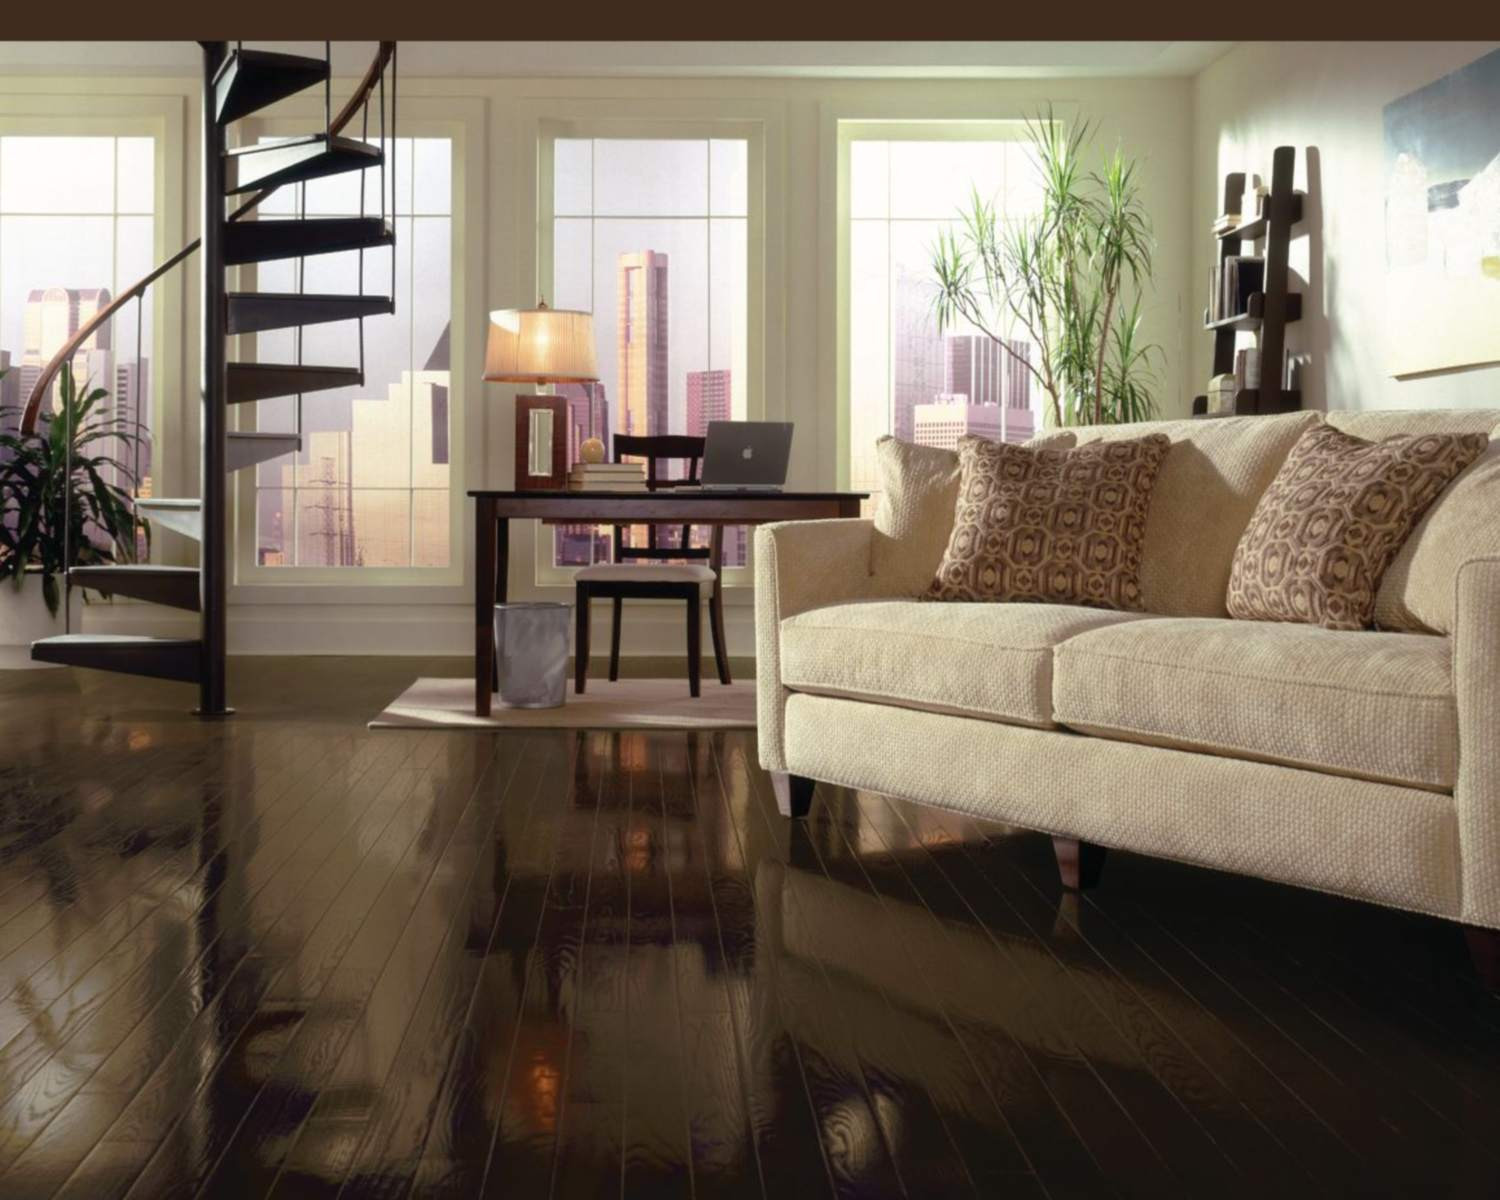 bruce hardwood floor cleaner home depot of top 5 brands for solid hardwood flooring in bruce a living room with bruce espresso oak flooring